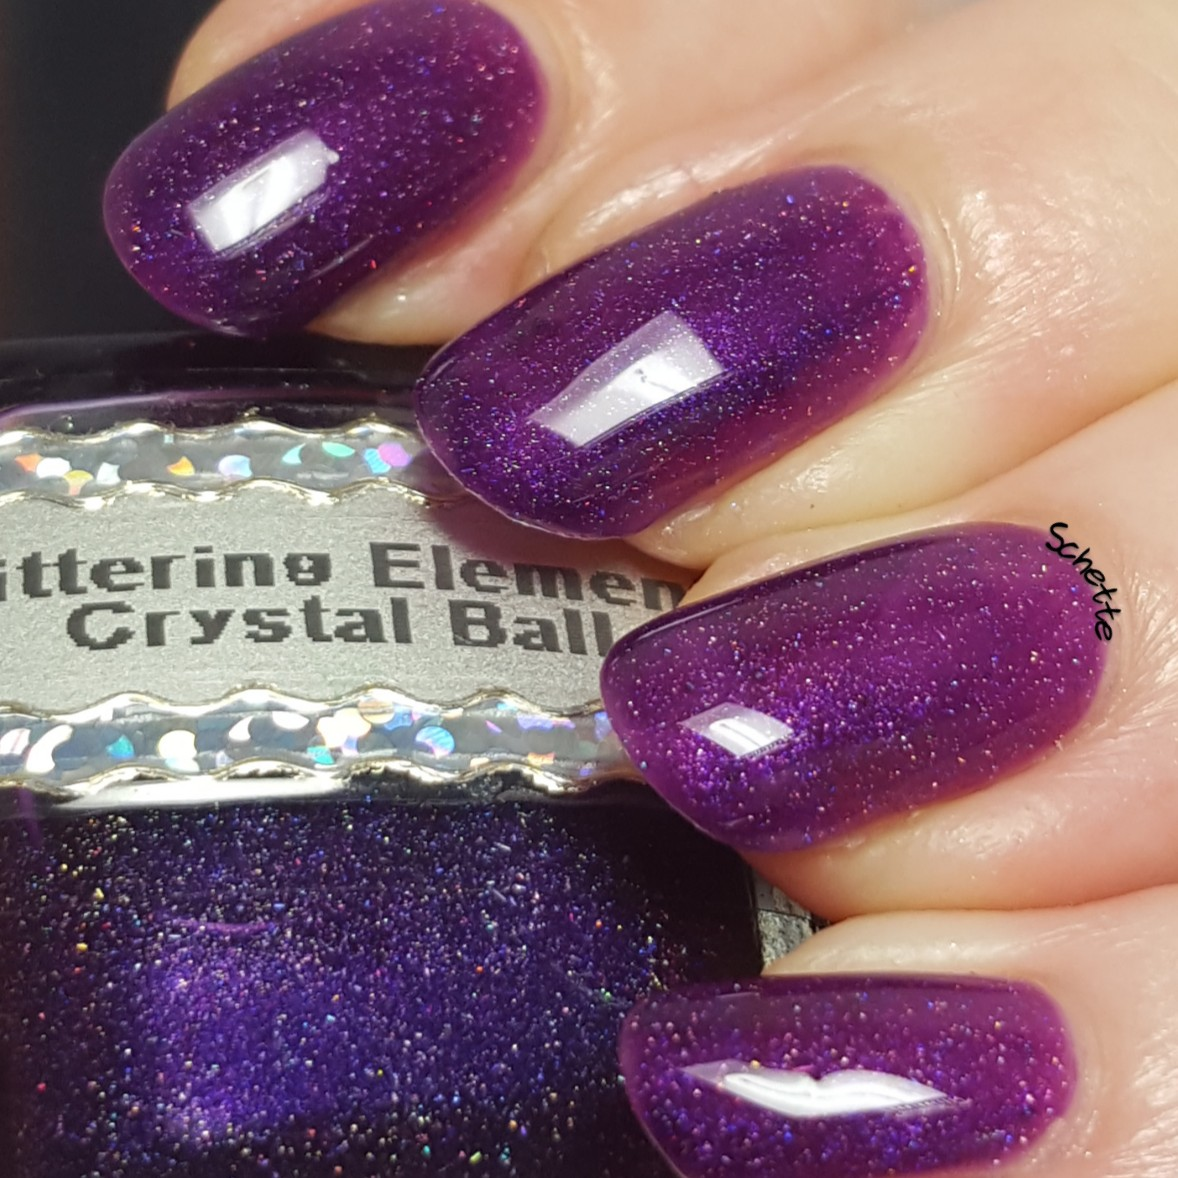 Glittering Elements - Crystal Ball